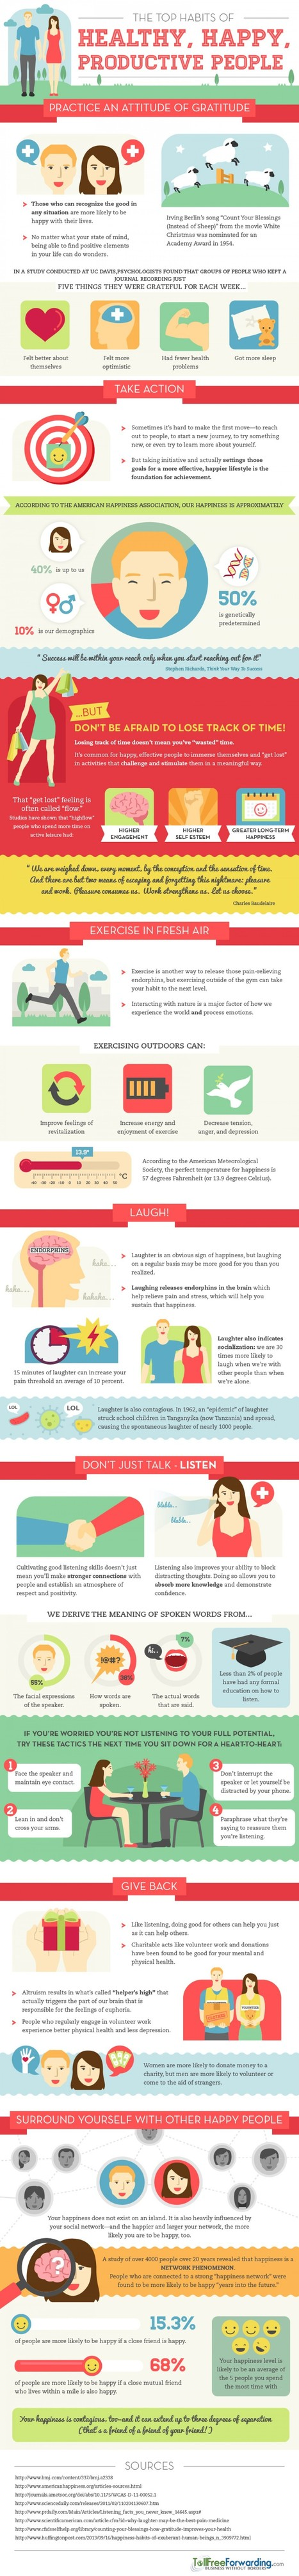 Infographic: The Top Habits Of Healthy, Happy, Productive People | Education, Curiosity, and Happiness | Scoop.it